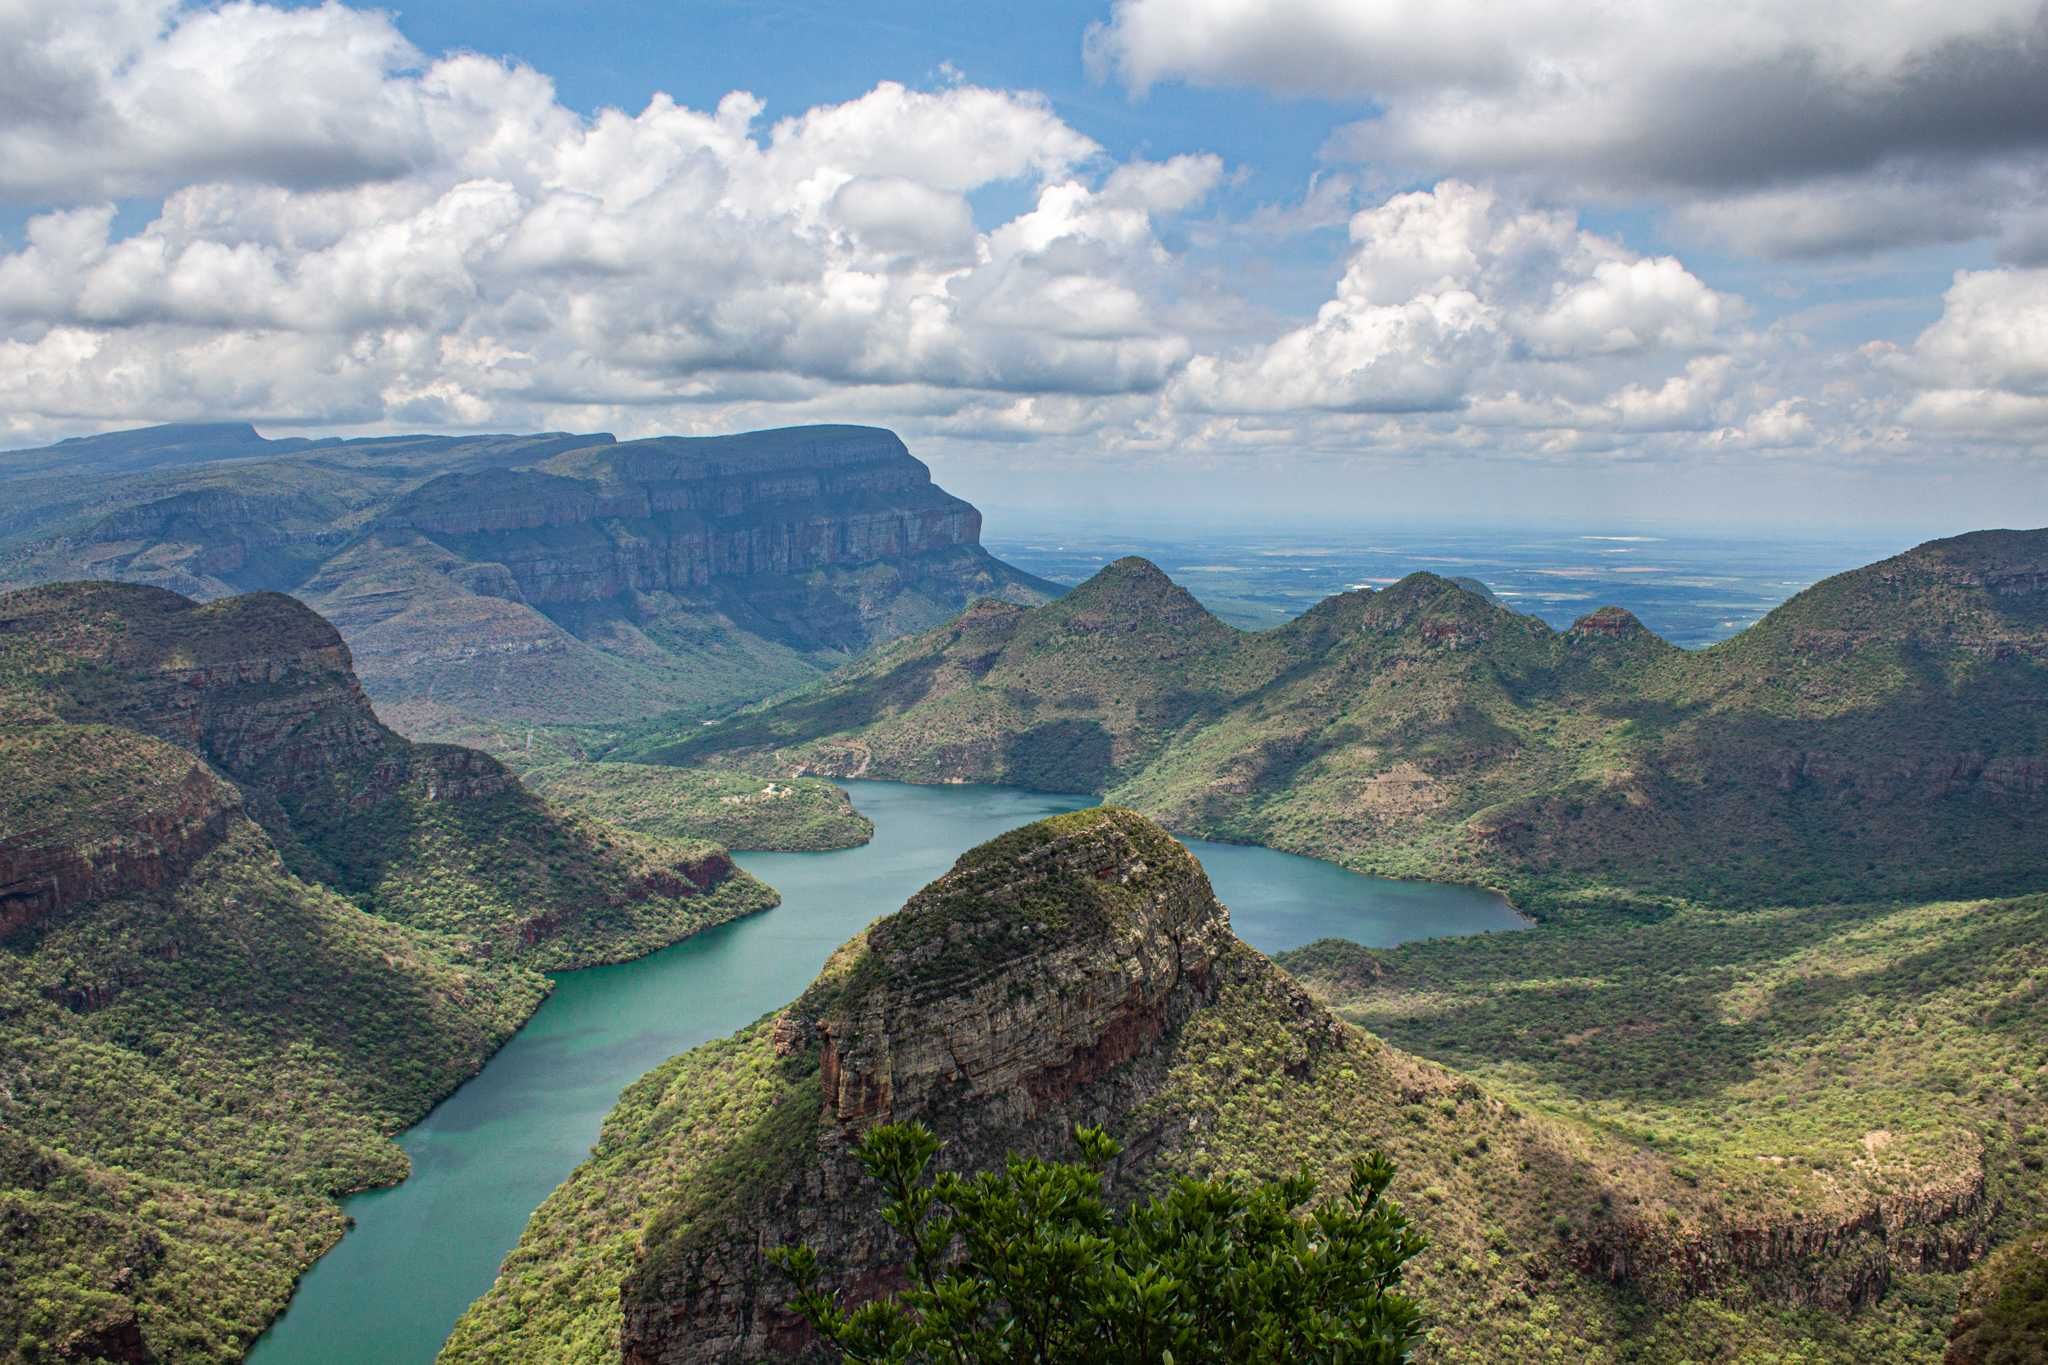 a light blue river cuts through a green, mountainous landscape - a beautiful stop on your south africa vacation